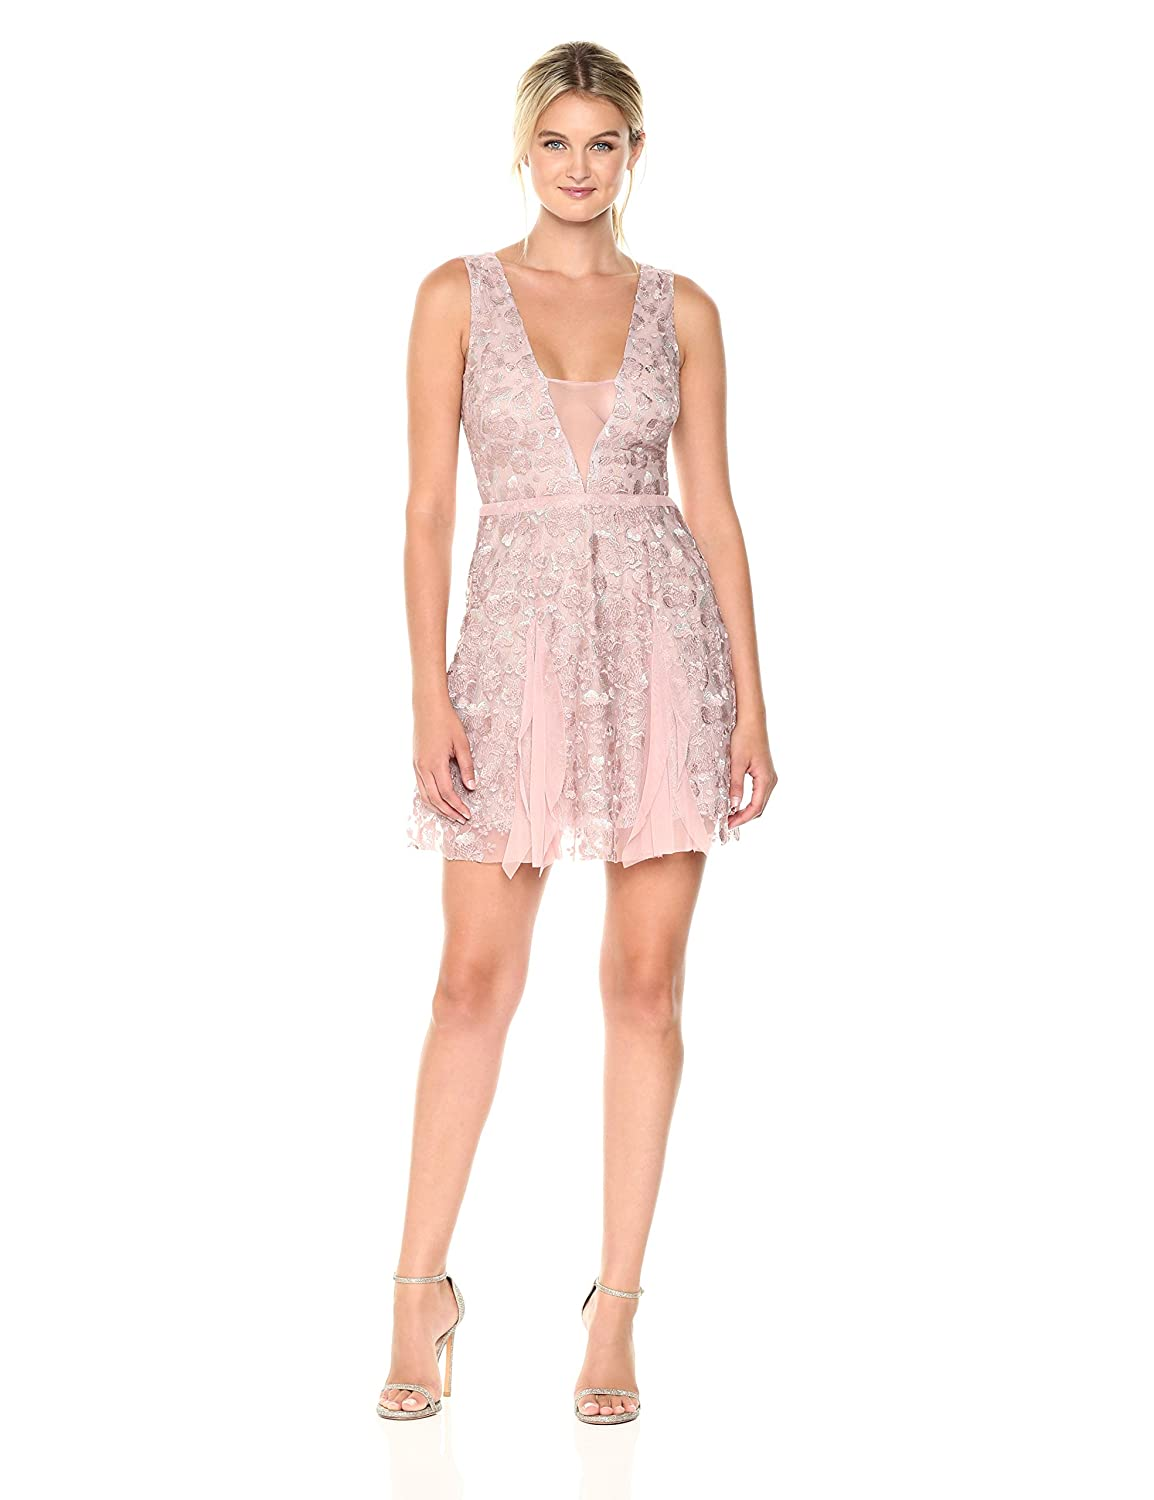 Antique pink BCBGMax Azria Women's Pheobe Knit Ruffled Dress with Back Cut Out